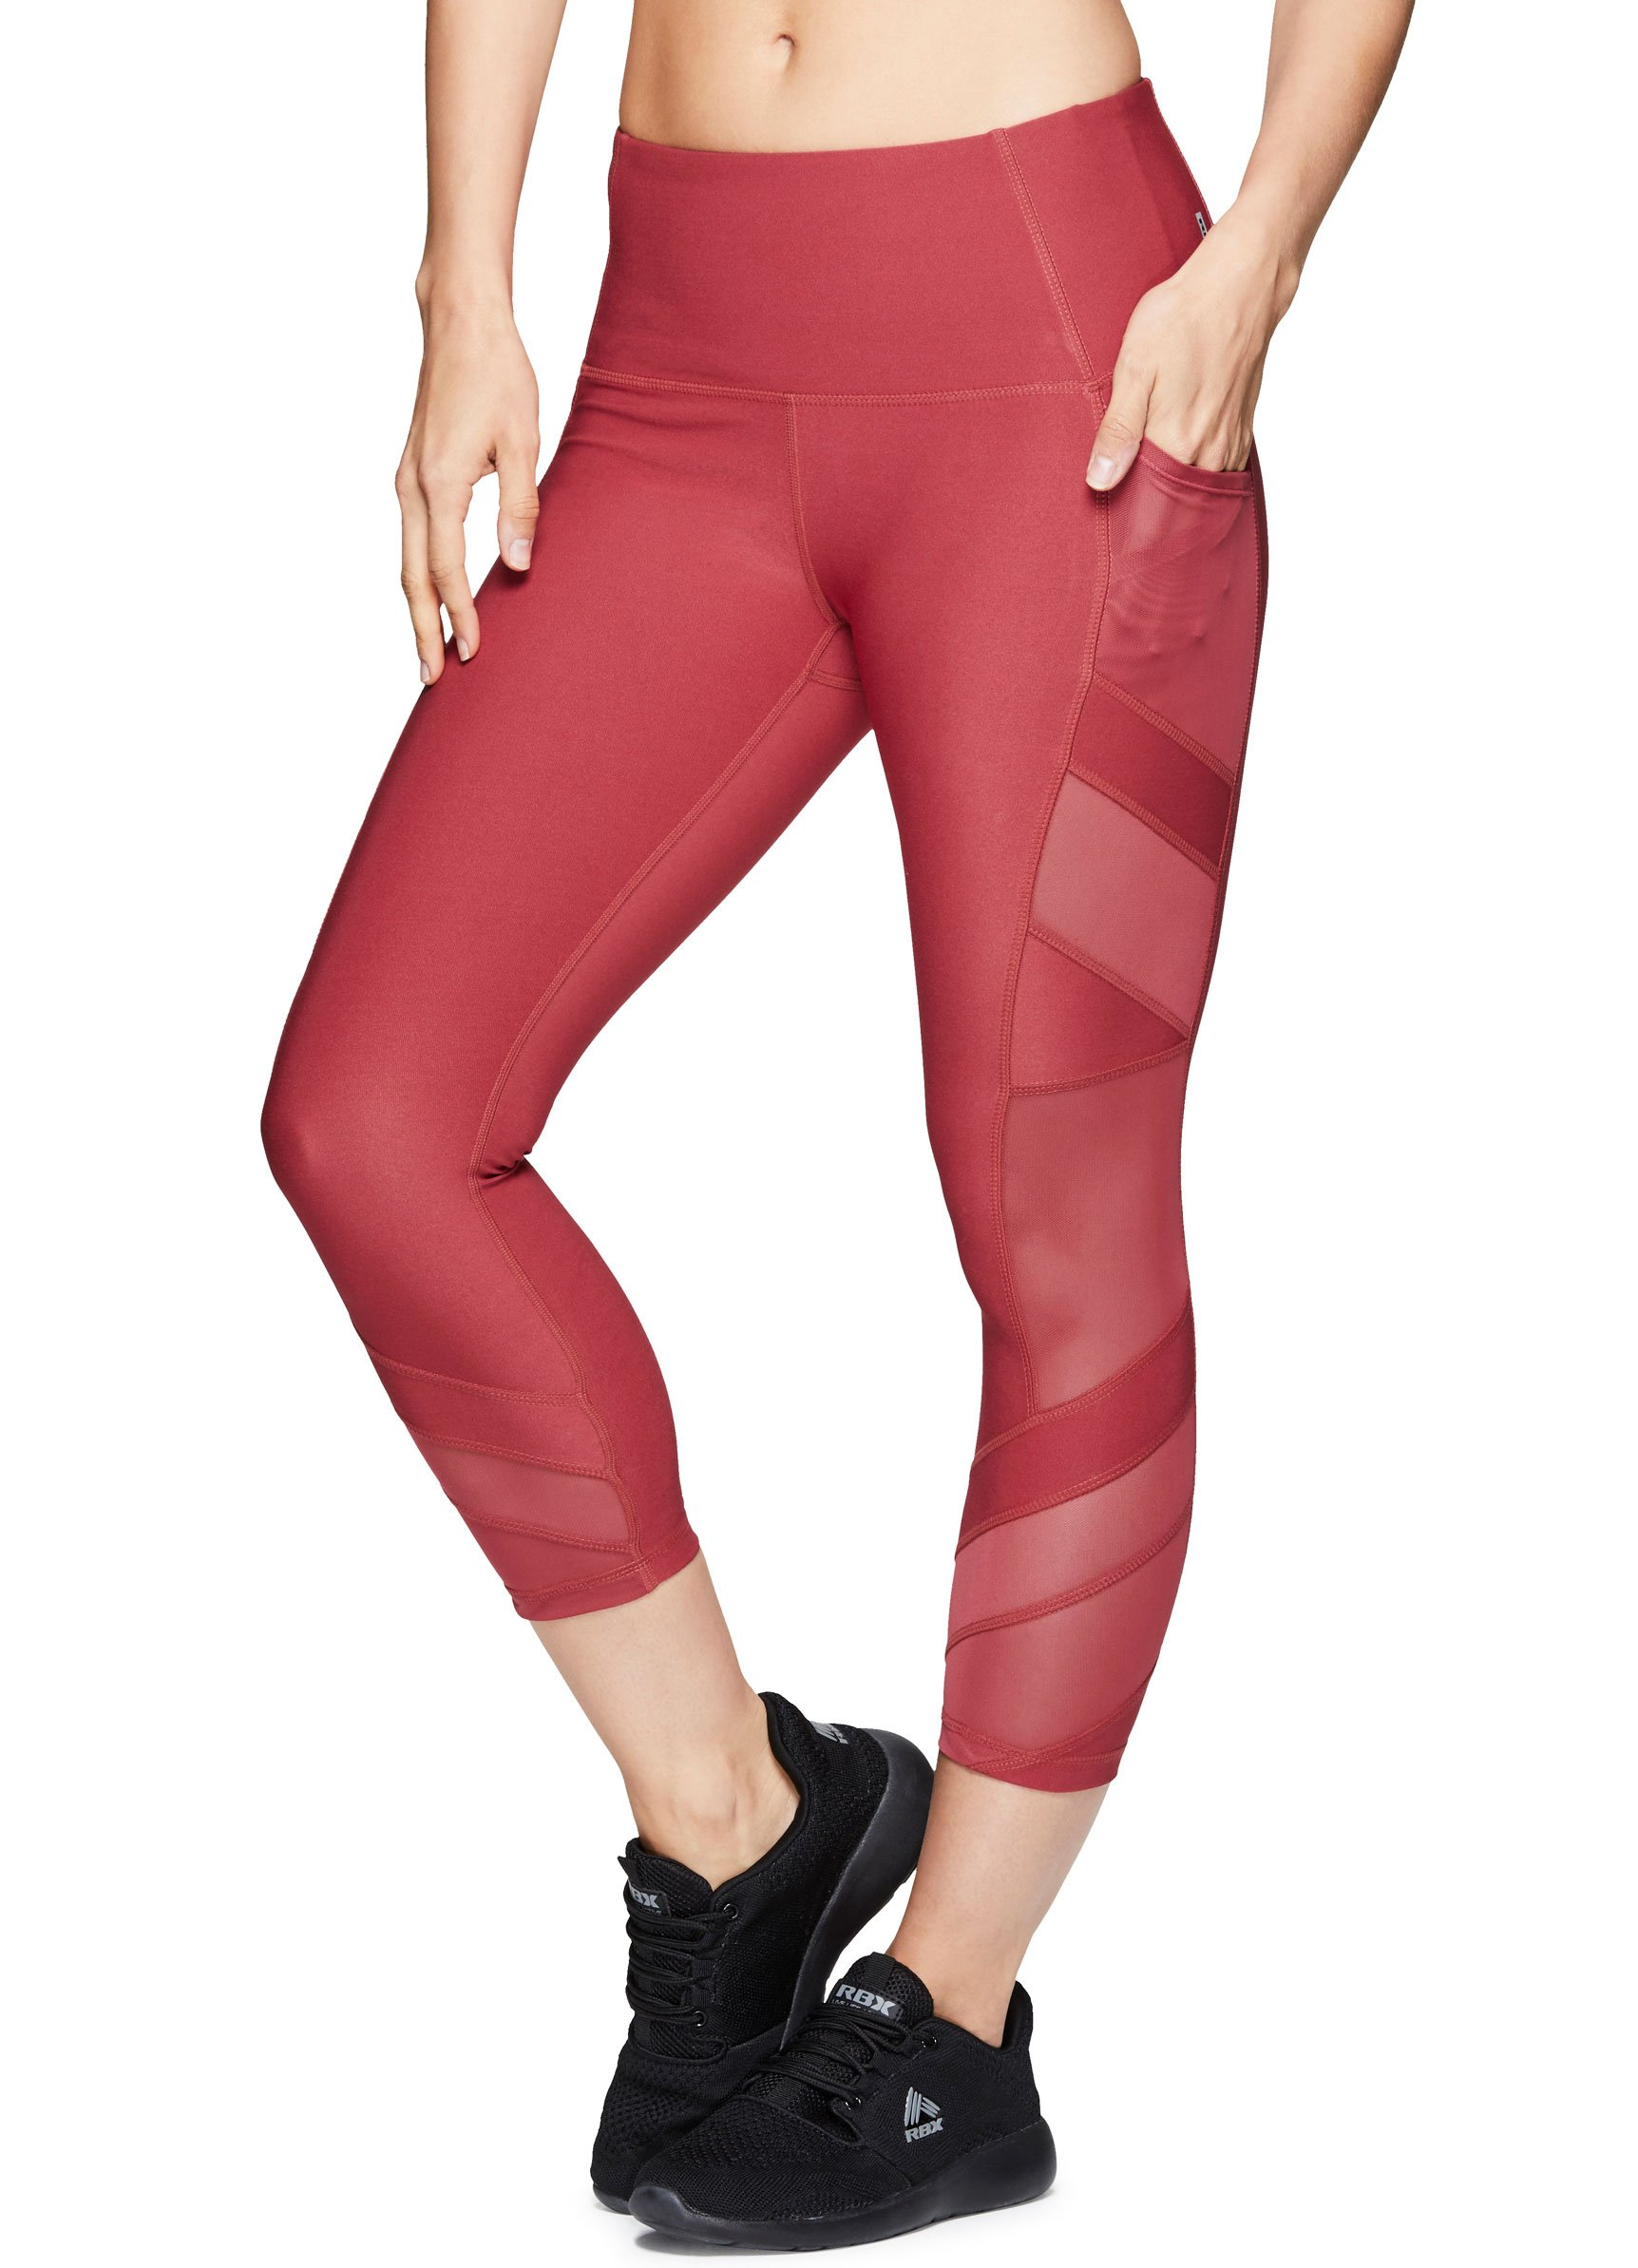 RBX Active Women's Workout Gym Yoga Athletic Leggings Red Multi Combo L